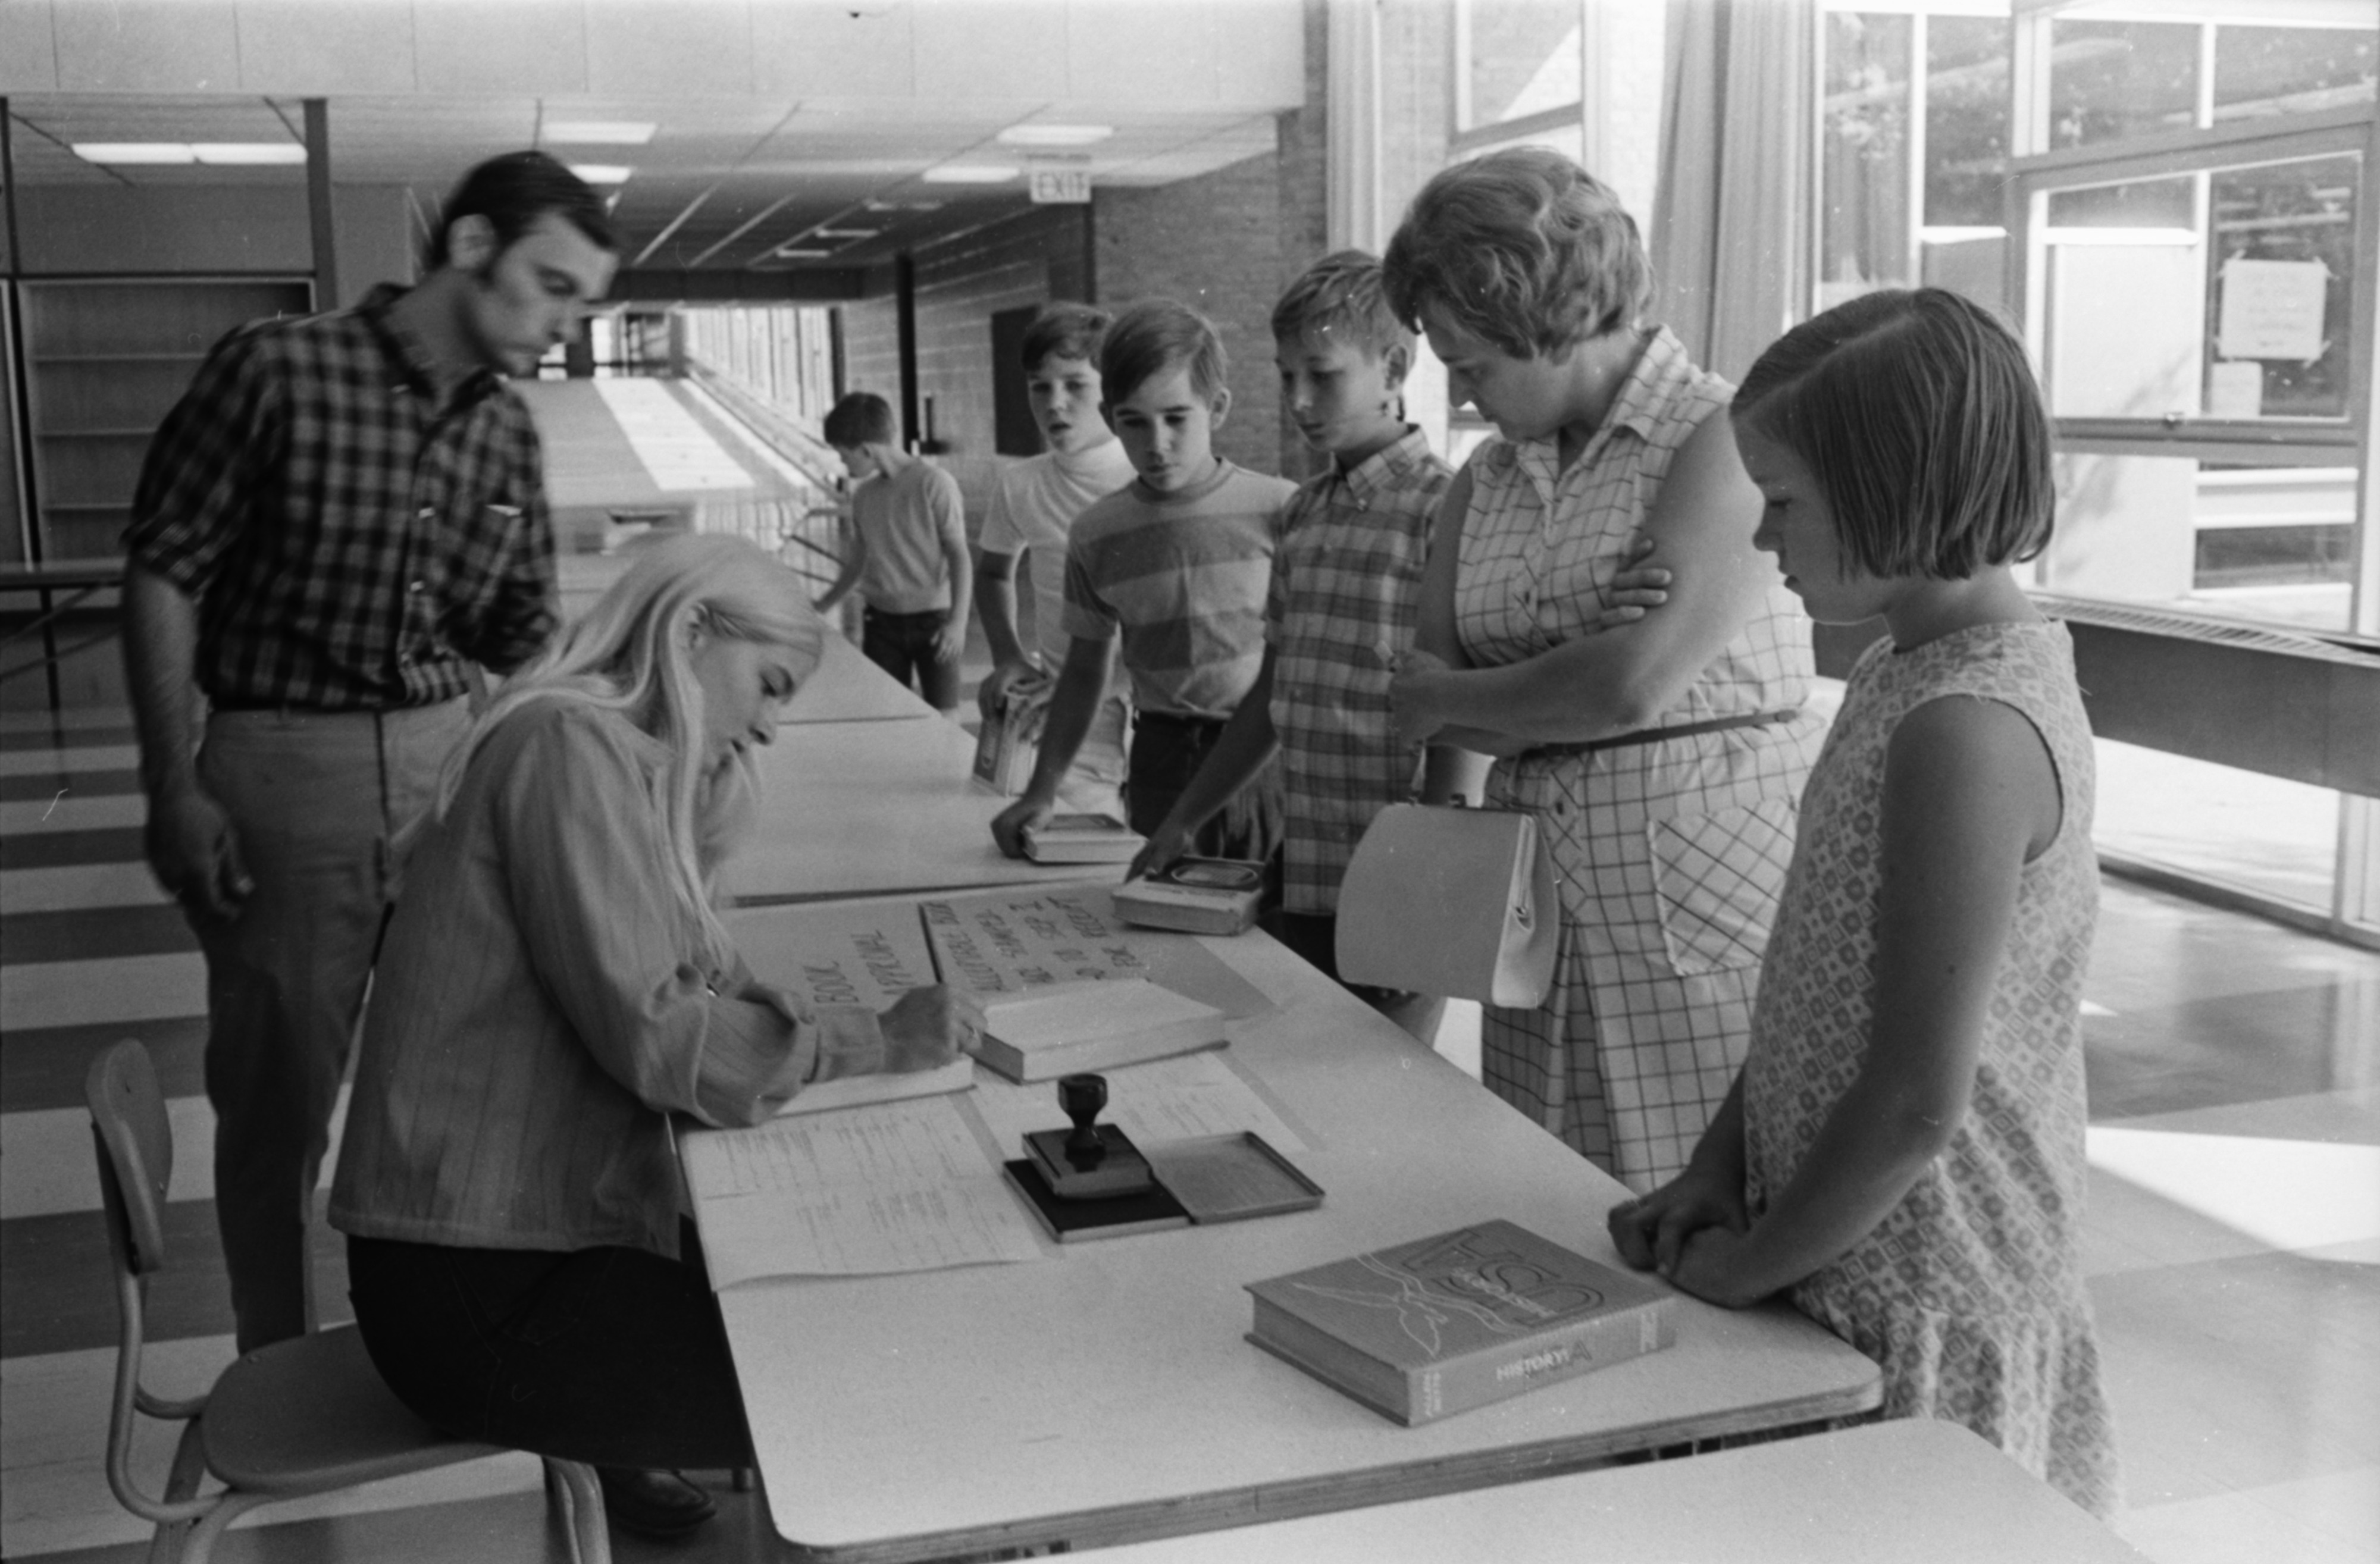 Students Exchange Used Textbooks for Cash at Forsythe Junior High, September 1970 image